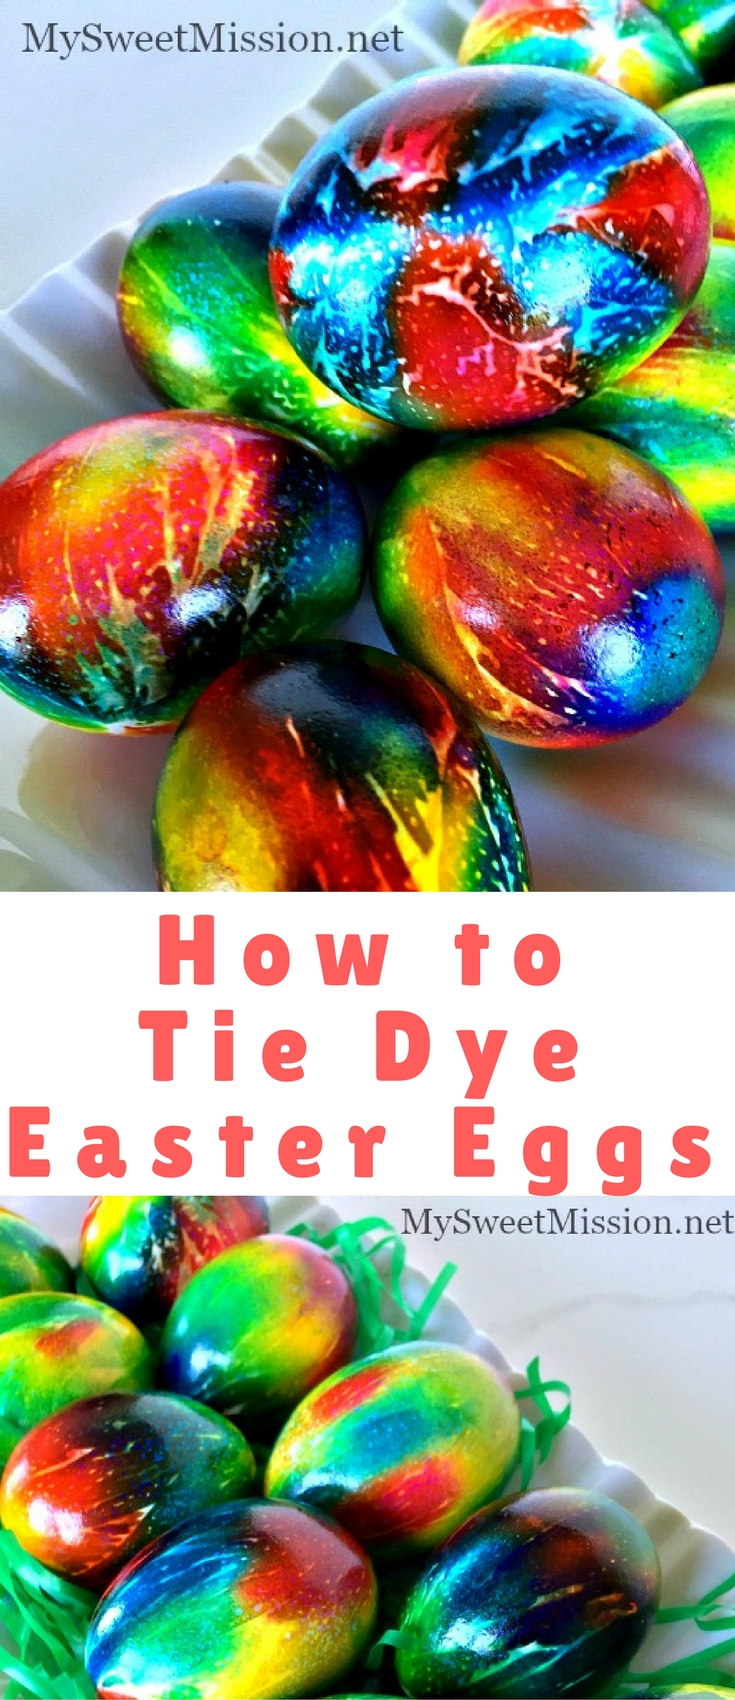 Say good-bye to dull, boring, washed-out Easter eggs, because we are showing you an awesome technique on How to Tie Dye Easter Eggs.